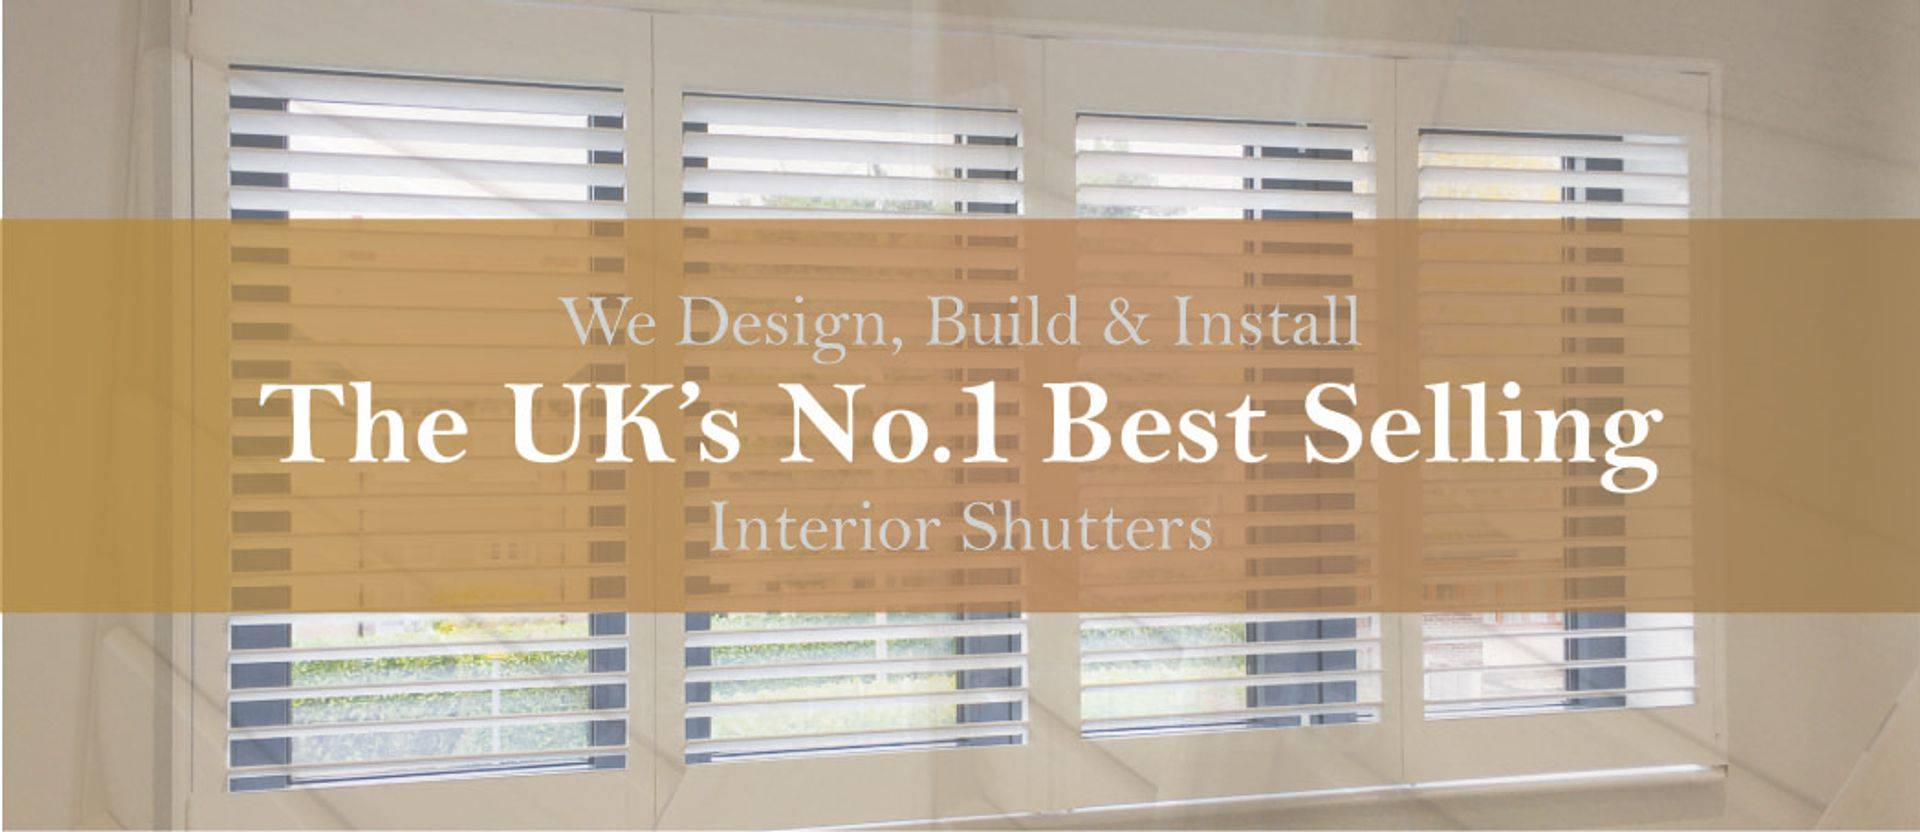 CP Shutters, supplying the most popular bespoke, wooden interior shutters in the UK, throughout Essex